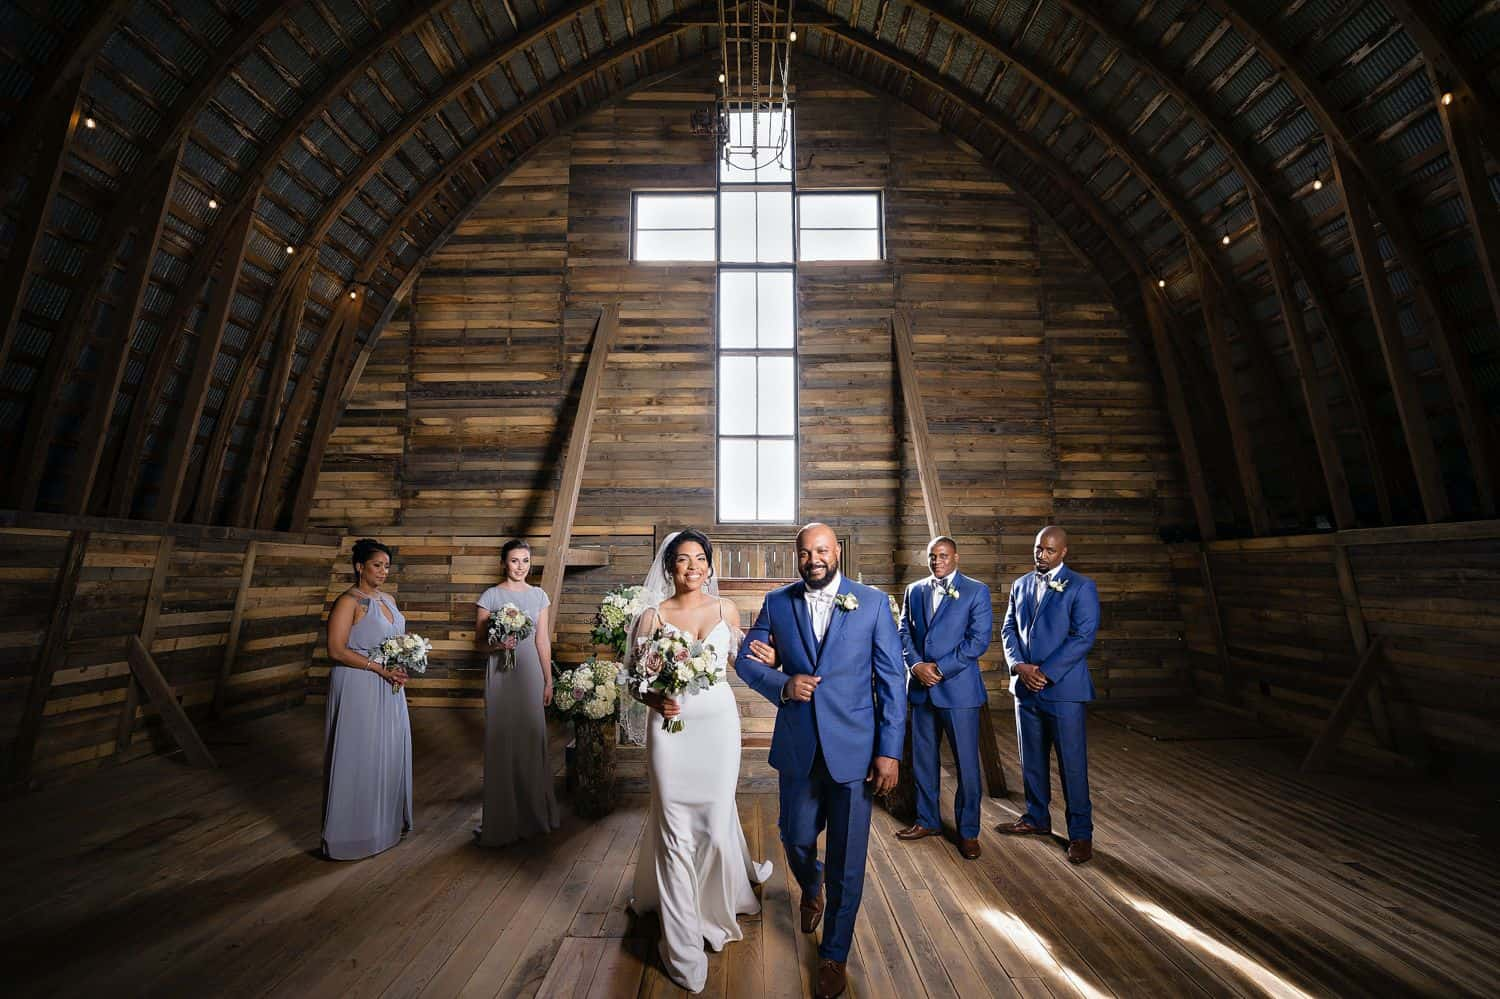 A wedding party stands by a cross-shaped window while the bride and groom process up the aisle at the end of their wedding